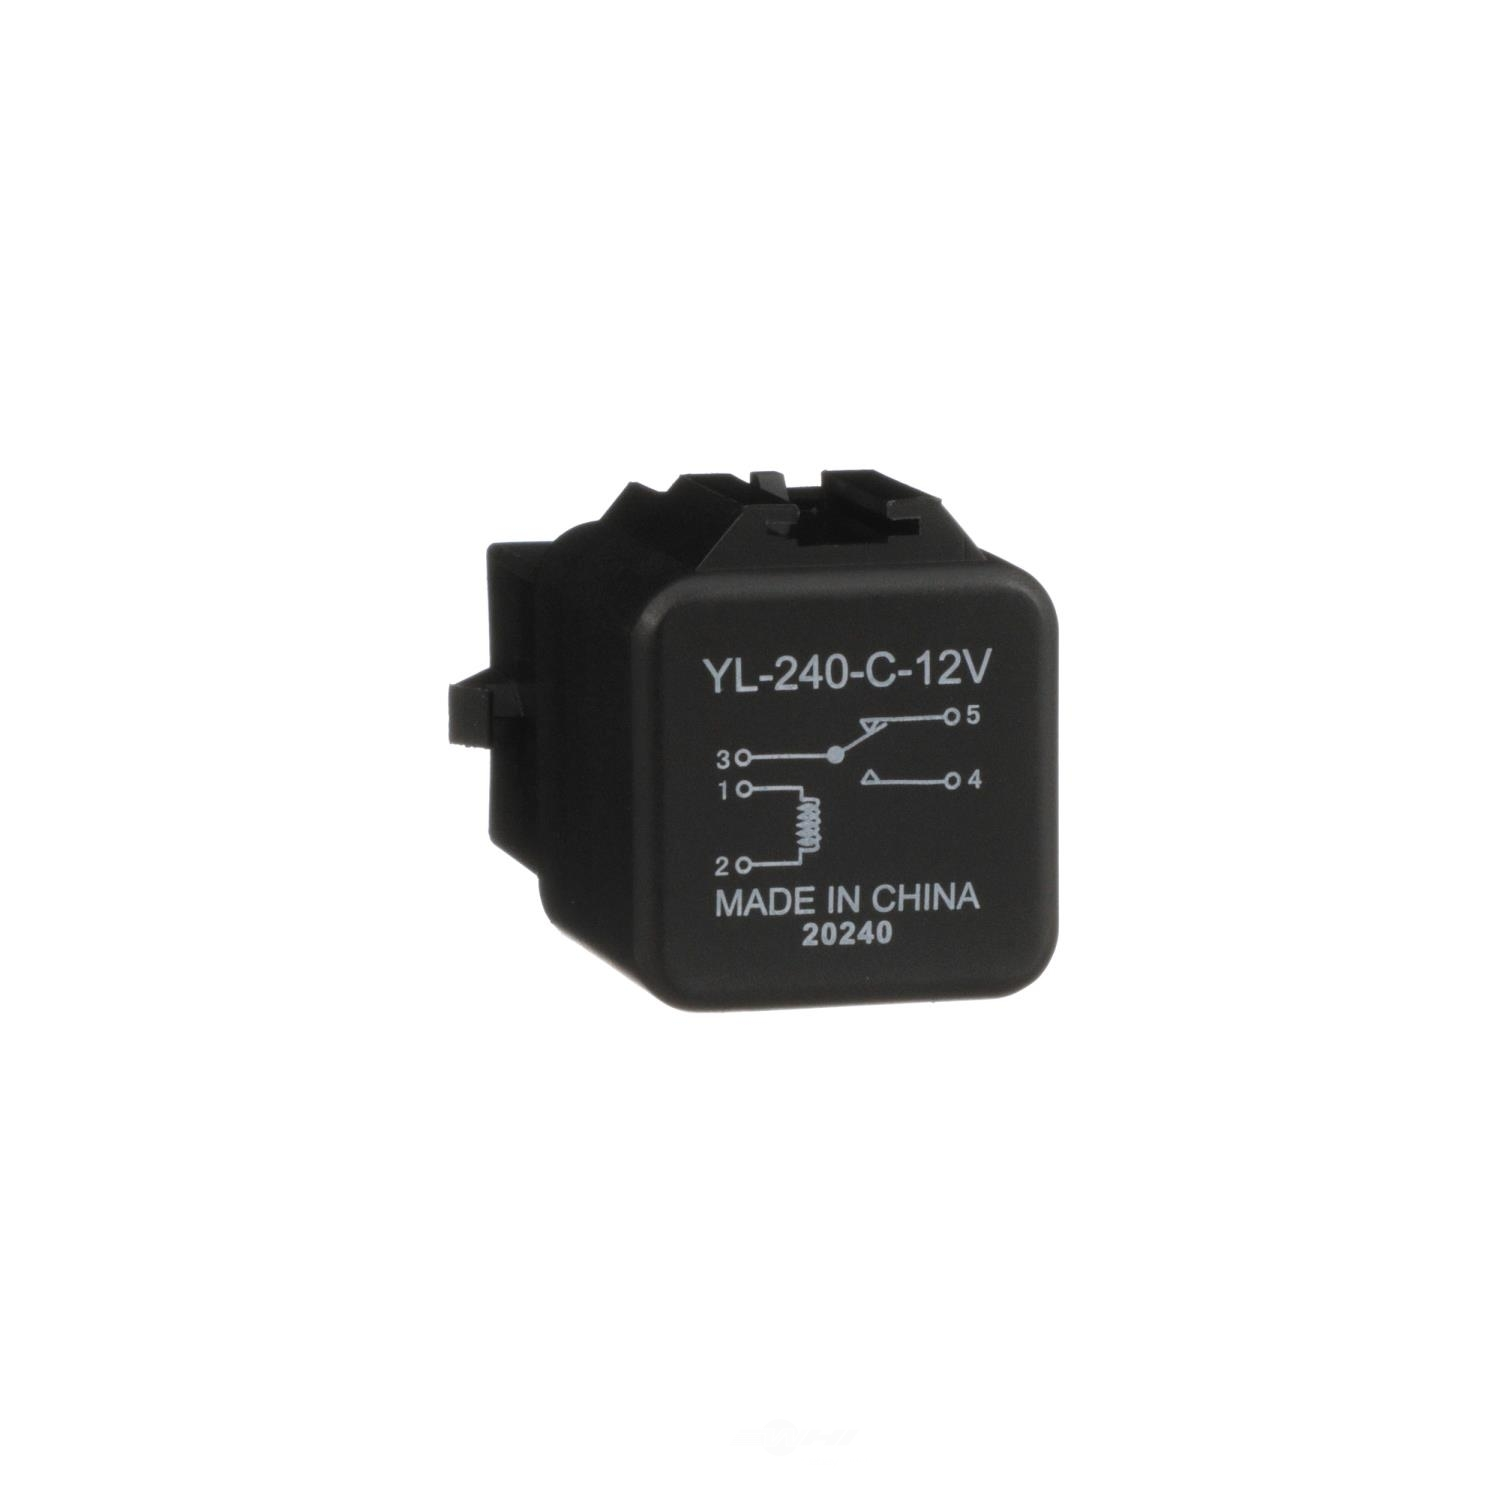 STANDARD MOTOR PRODUCTS - Starter Motor Control Relay - STA RY-46